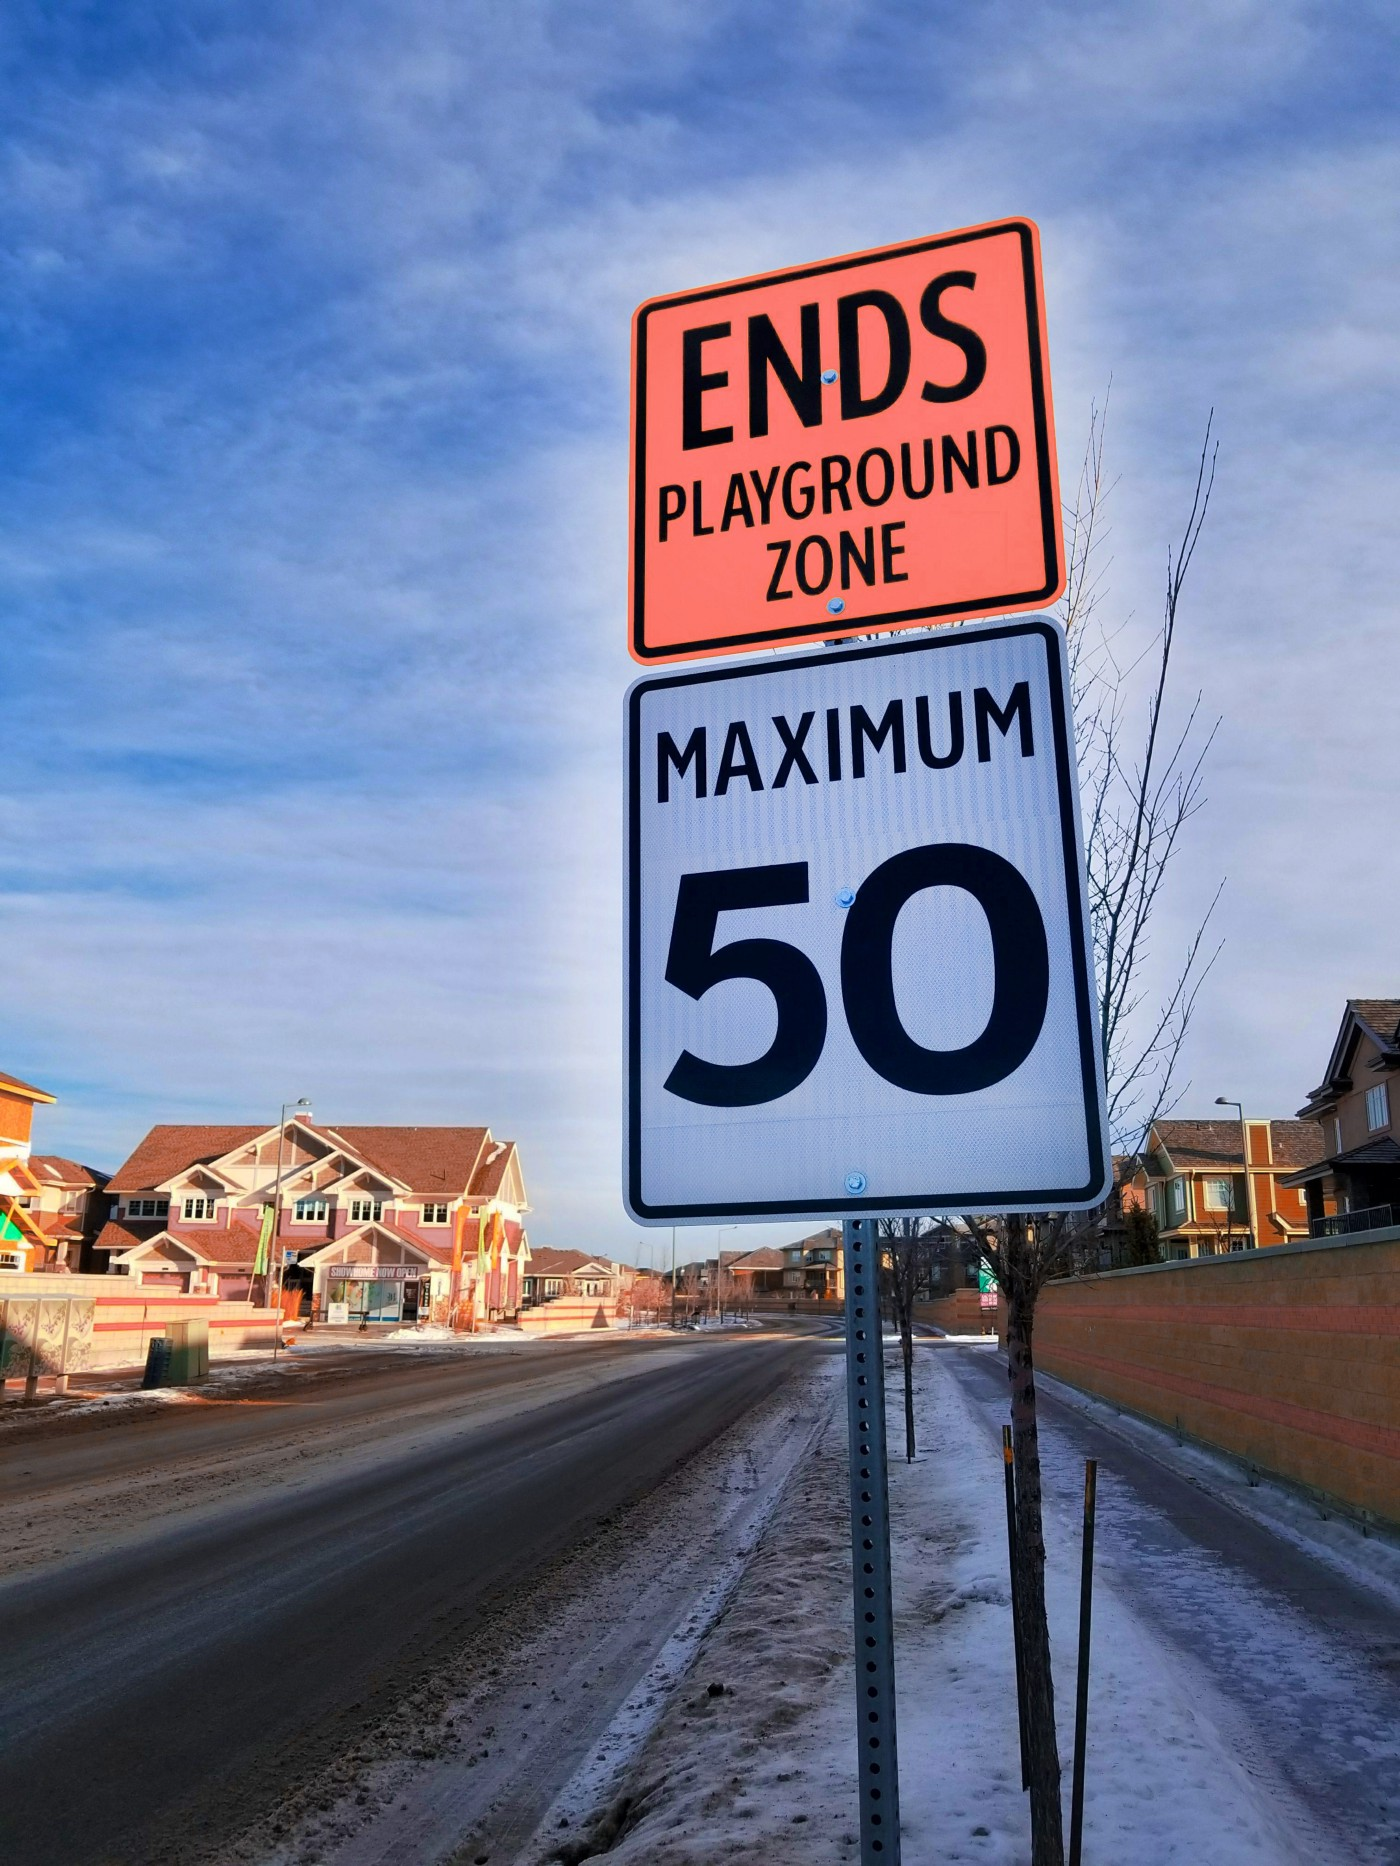 "A road sign reads ""ENDS PLAYGROUND ZONE"" . Below it, another sign reads MAXIMUM 50."